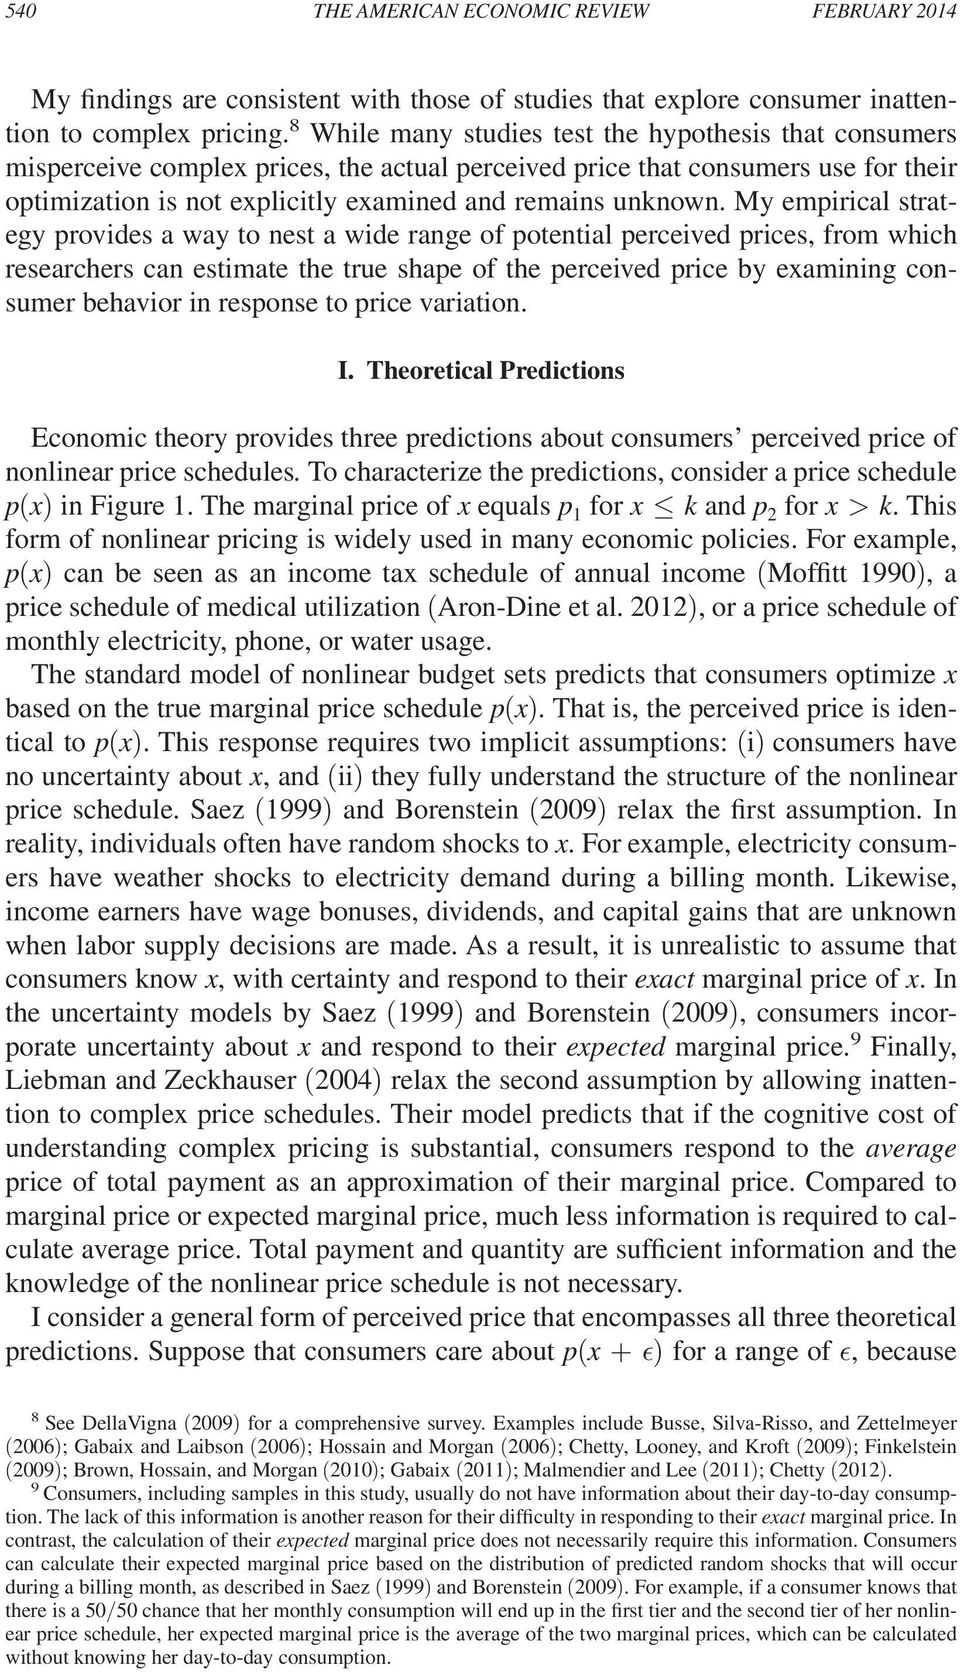 My empirical strategy provides a way to nest a wide range of potential perceived prices, from which researchers can estimate the true shape of the perceived price by examining consumer behavior in